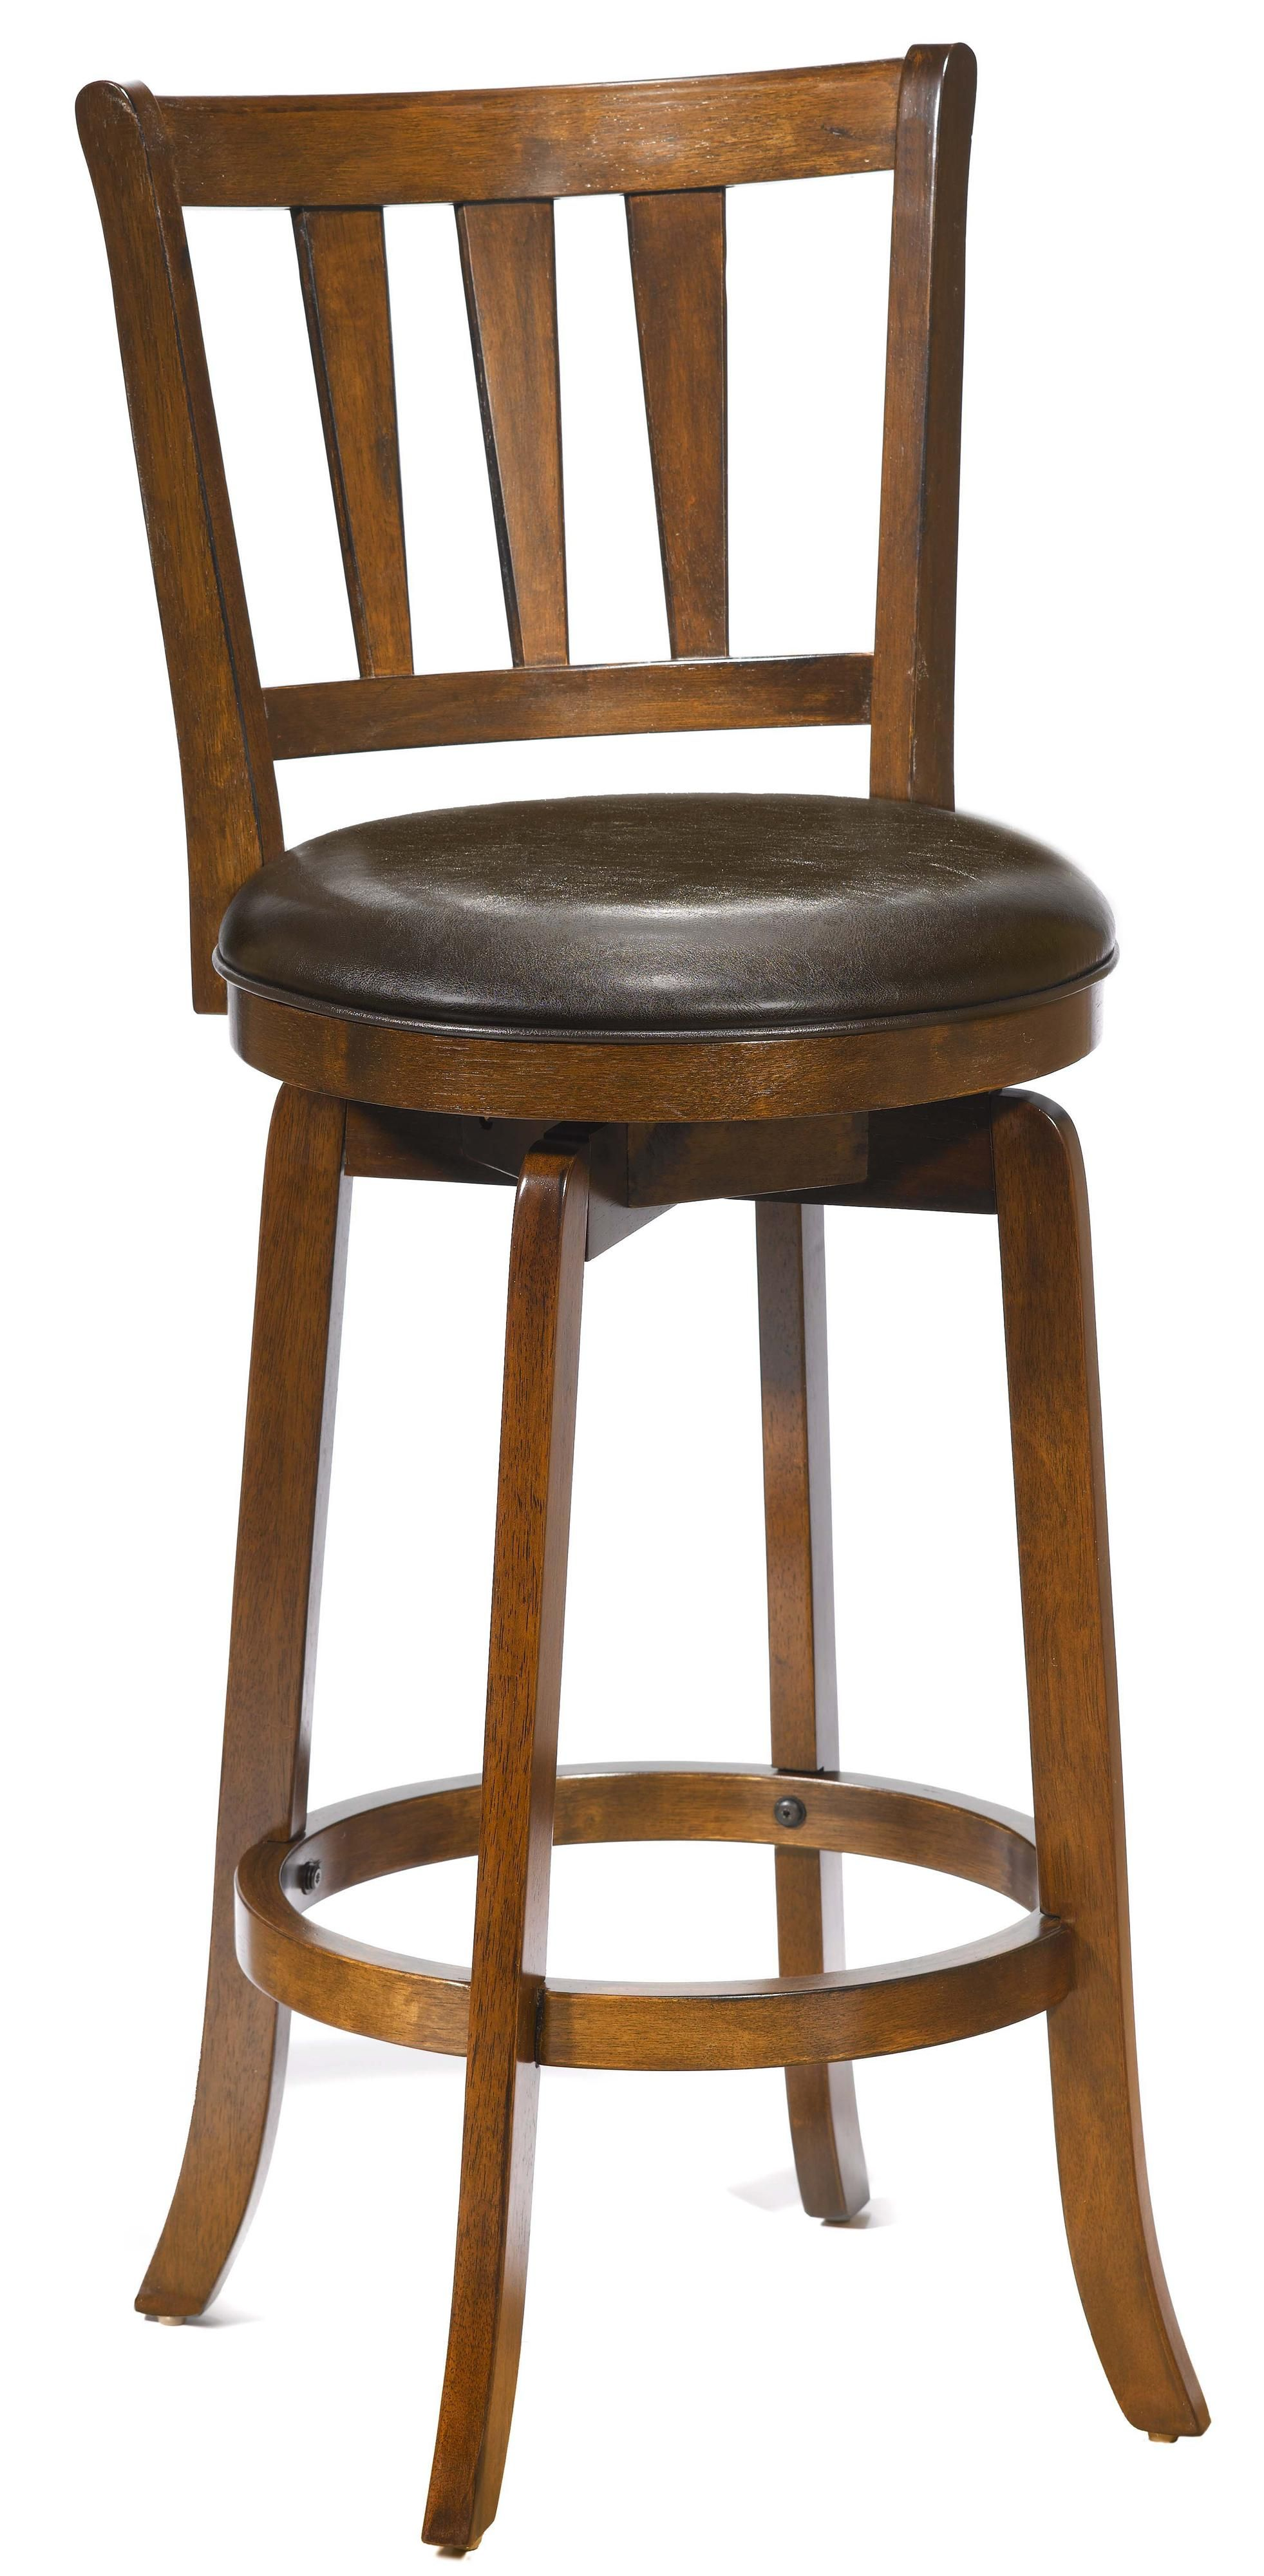 Best Of Hillsdale Counter Height Stools